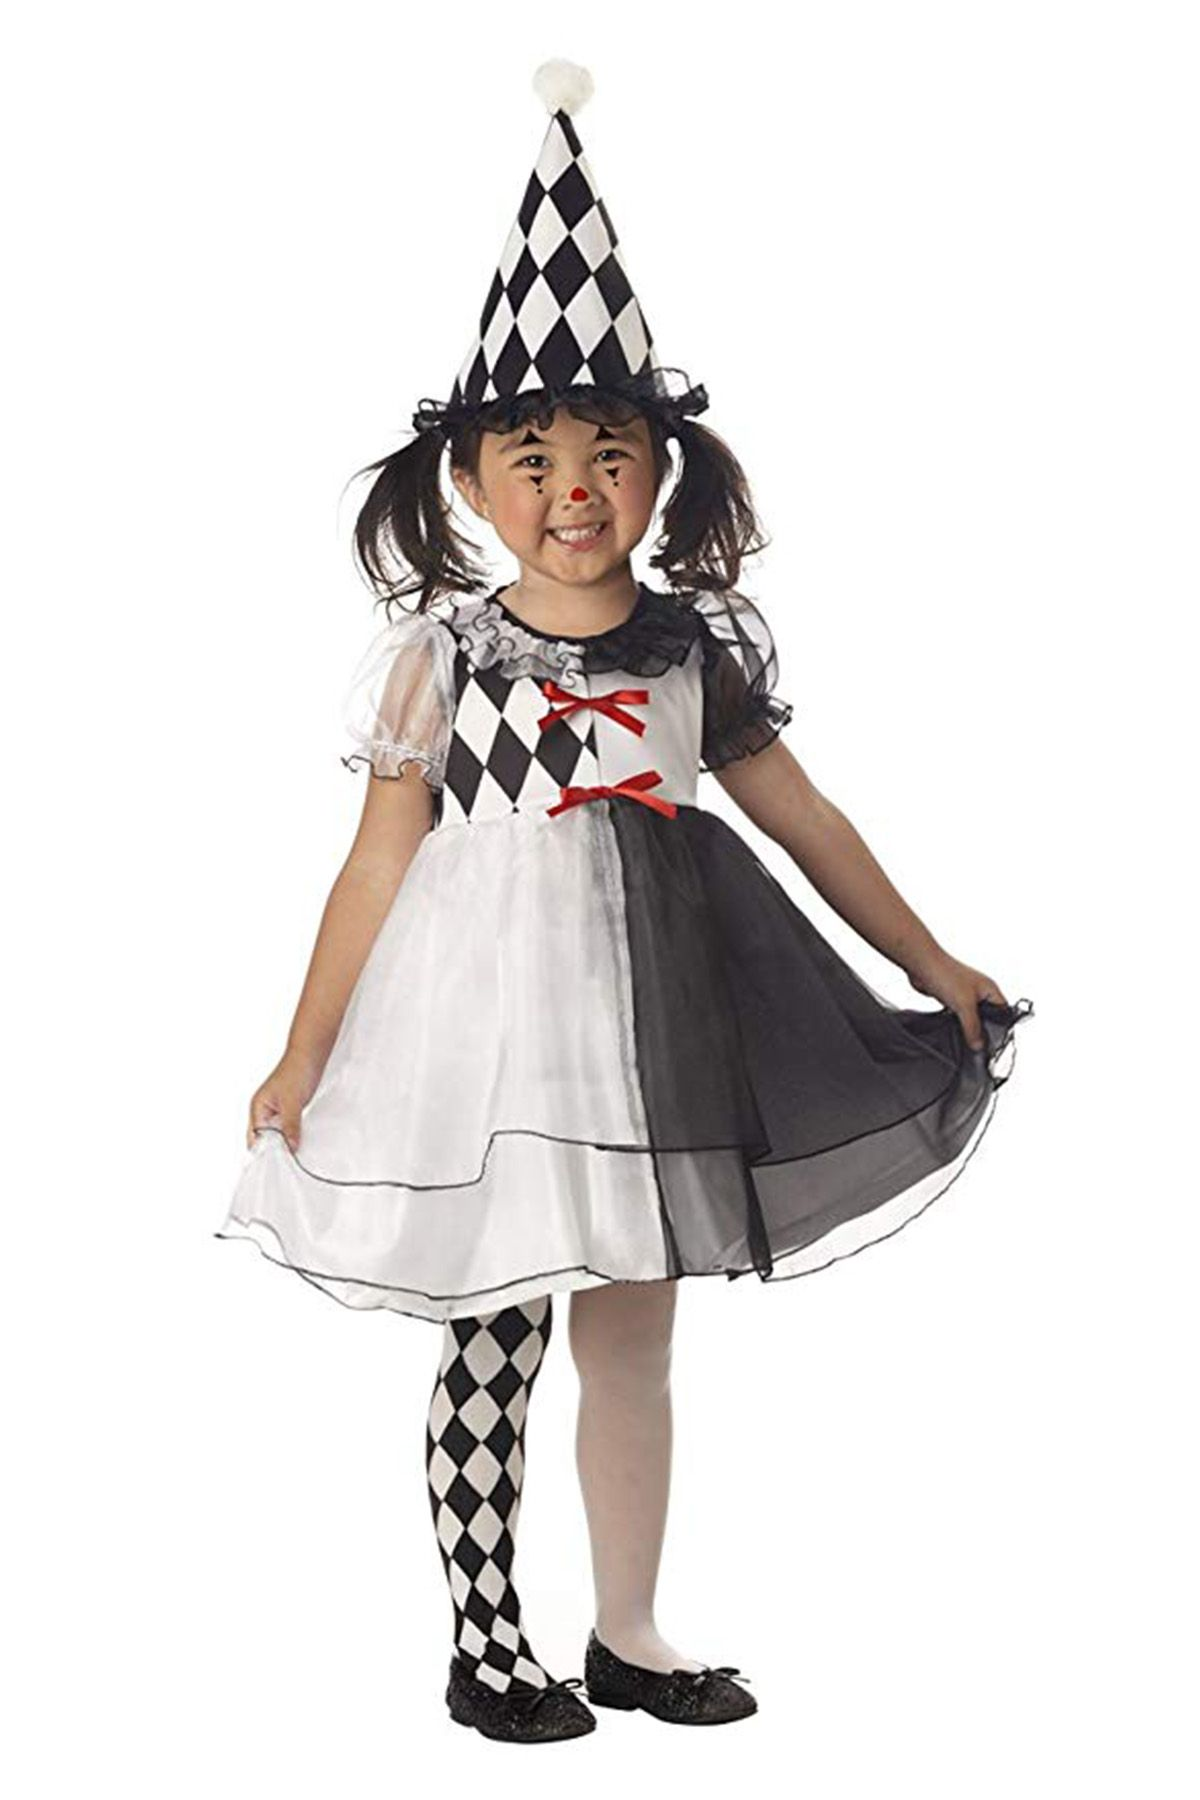 18 halloween costumes for girls - cute little girls' costume ideas